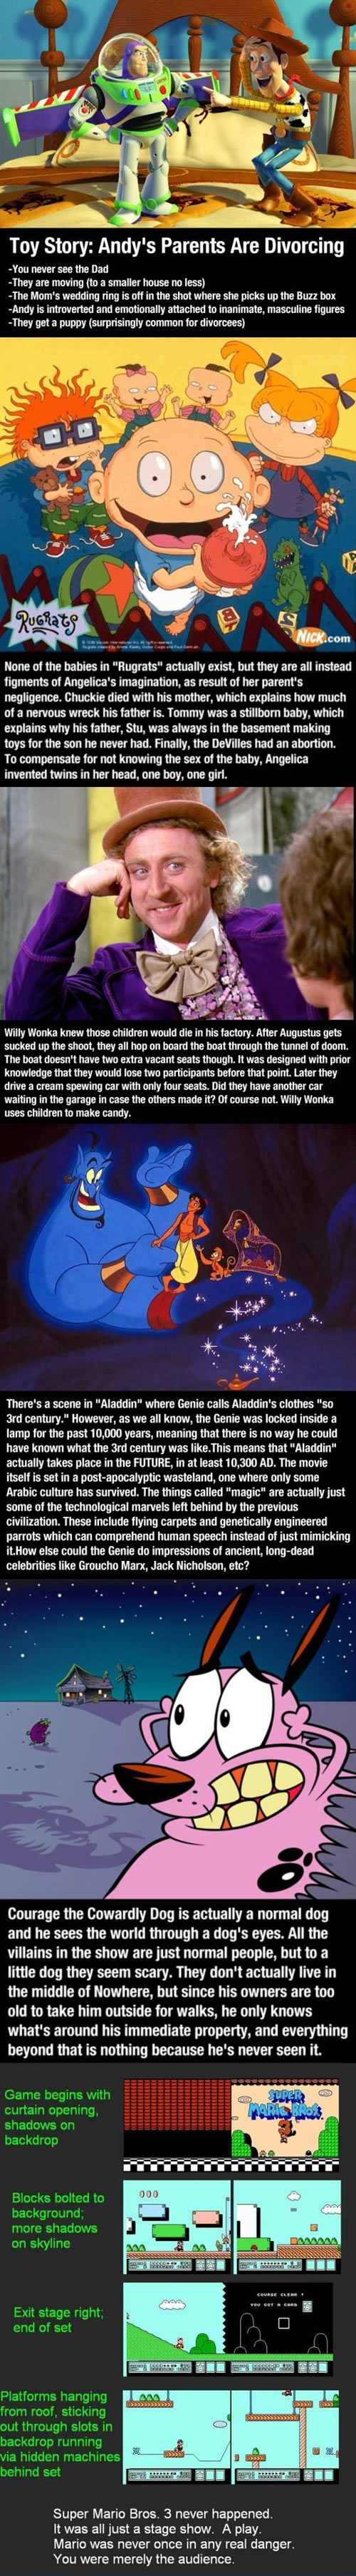 My Childhood is ruined.... Even if it isn't real. It's a pretty ...